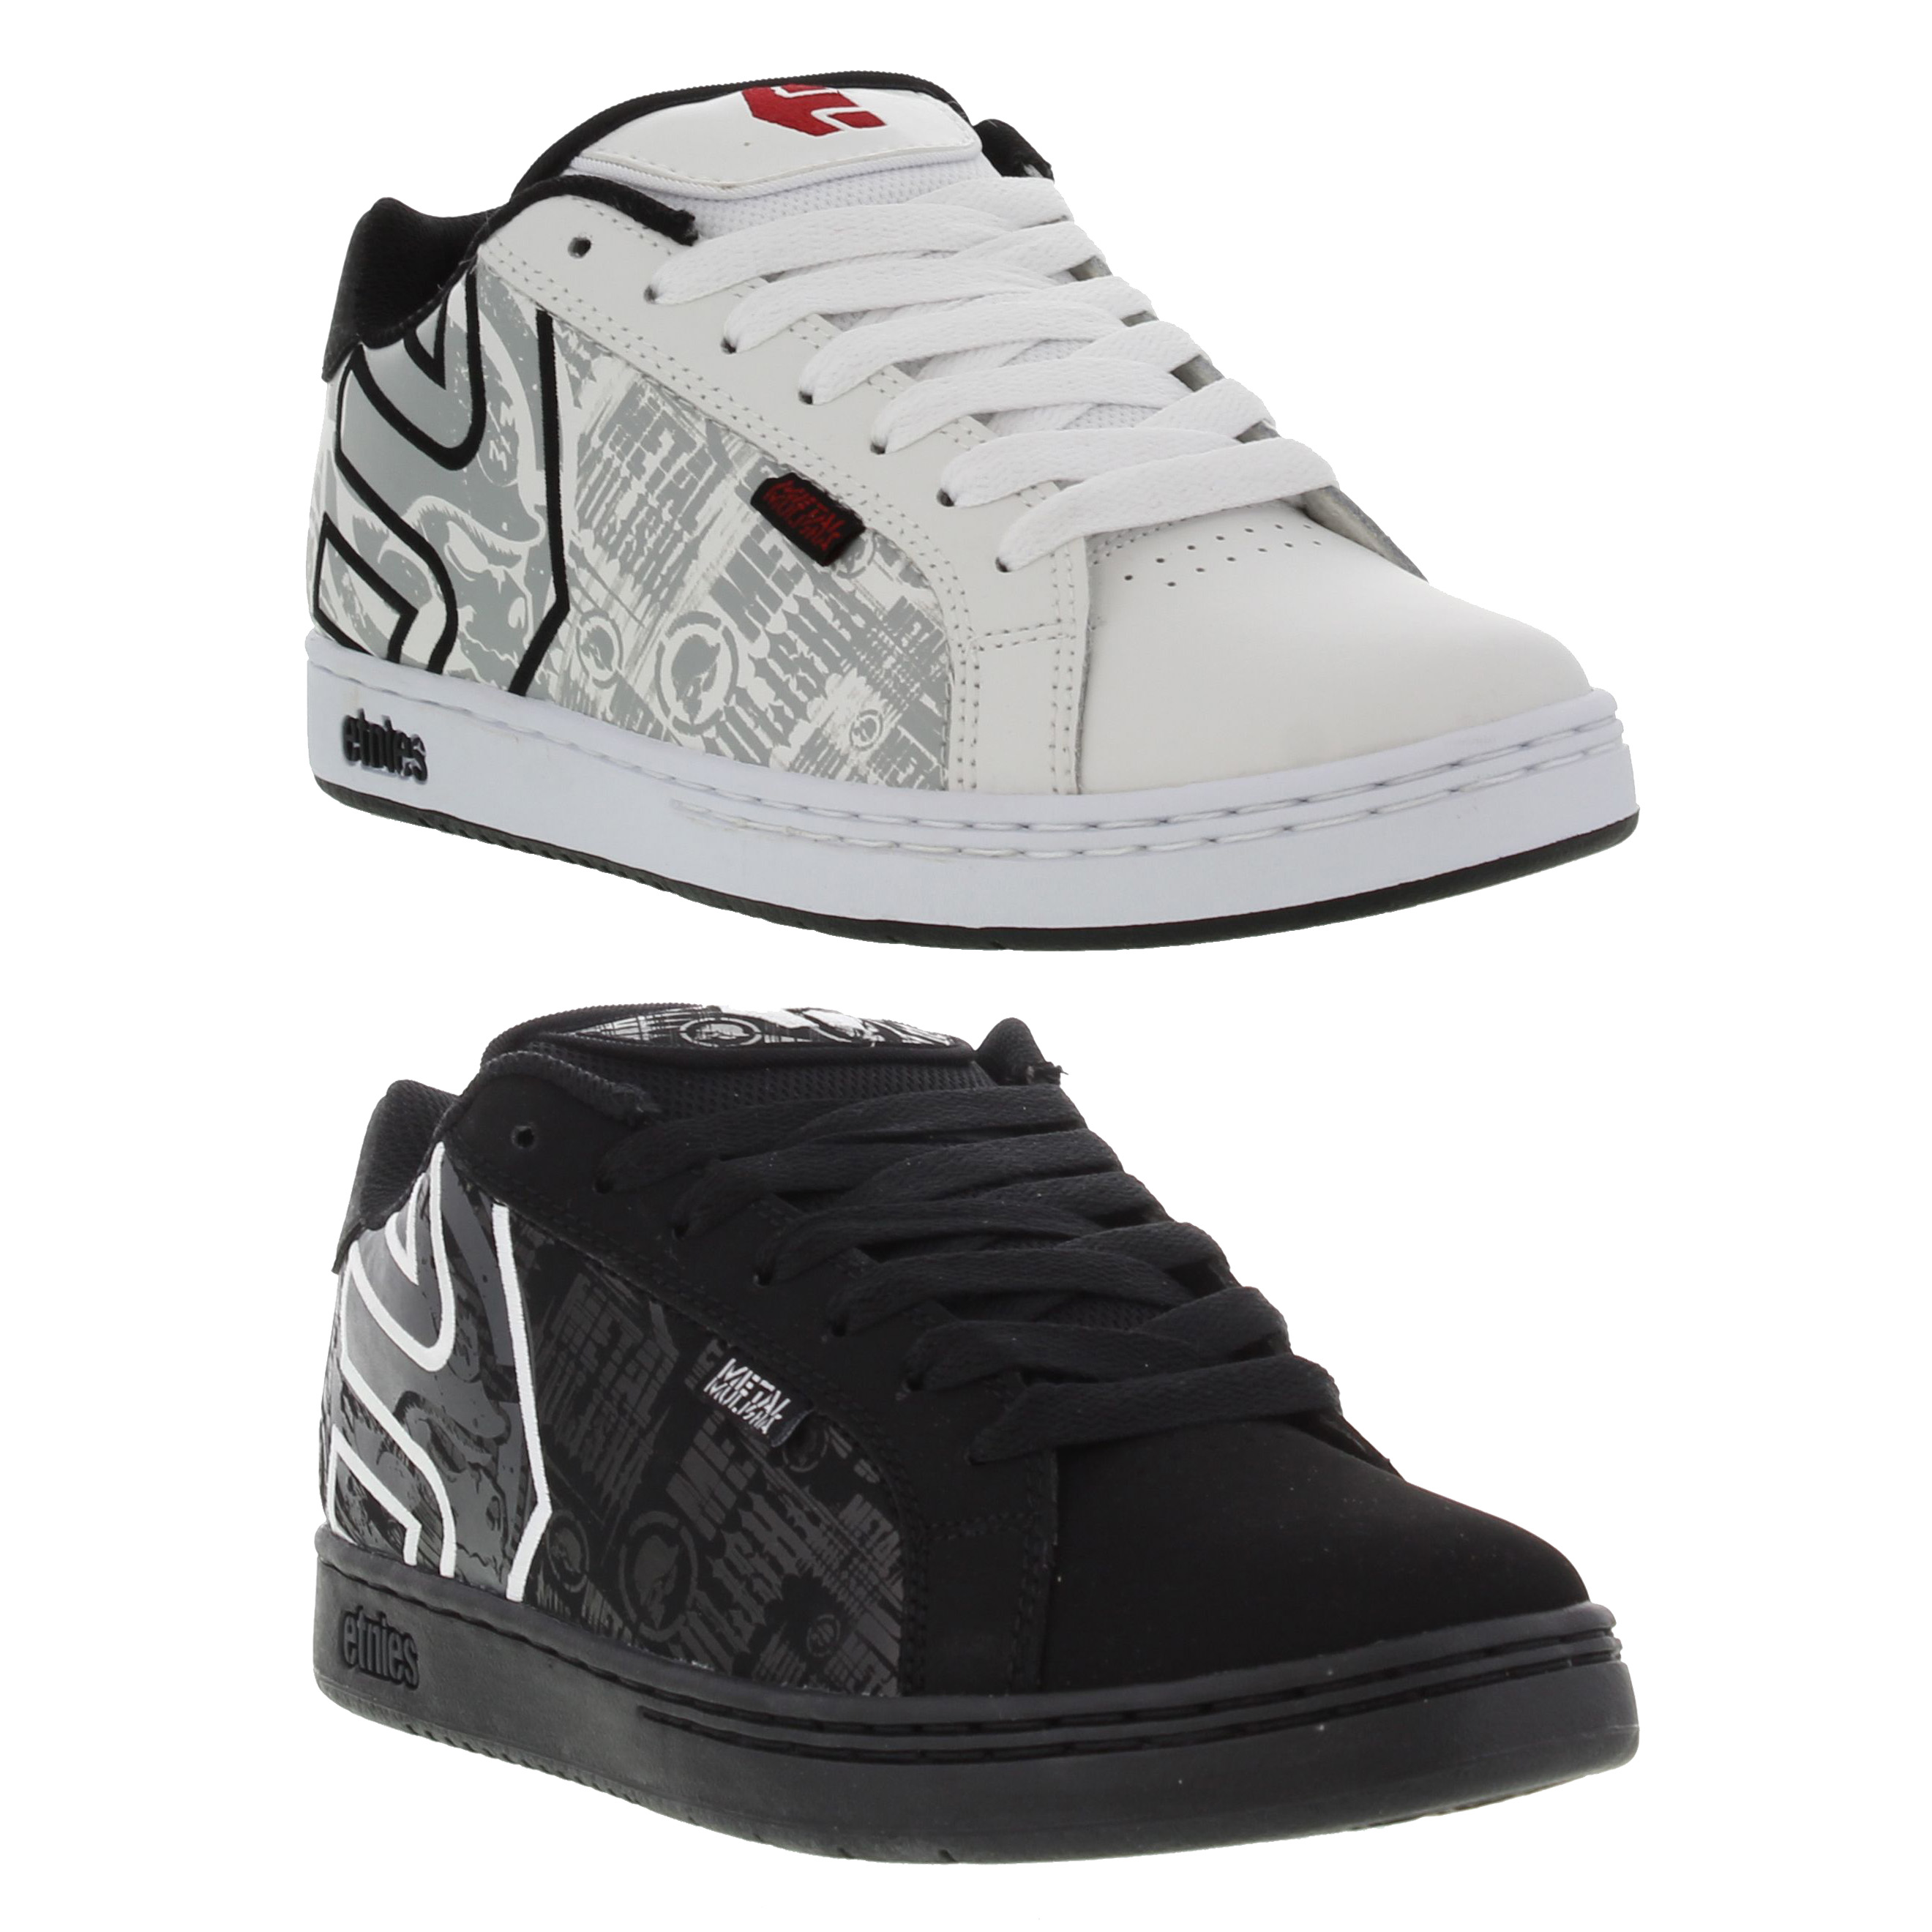 metal mulisha shoes. Category. Shoes The etnies metal mulisha Fader features a NBS rubber outsole with an internal eva midsole and an STI foam lite level 1 footbed and padded tongue and collar for additional protection and comfort. Established in , etnies is the first skateboarder- owned and skateboarder- operated global action.